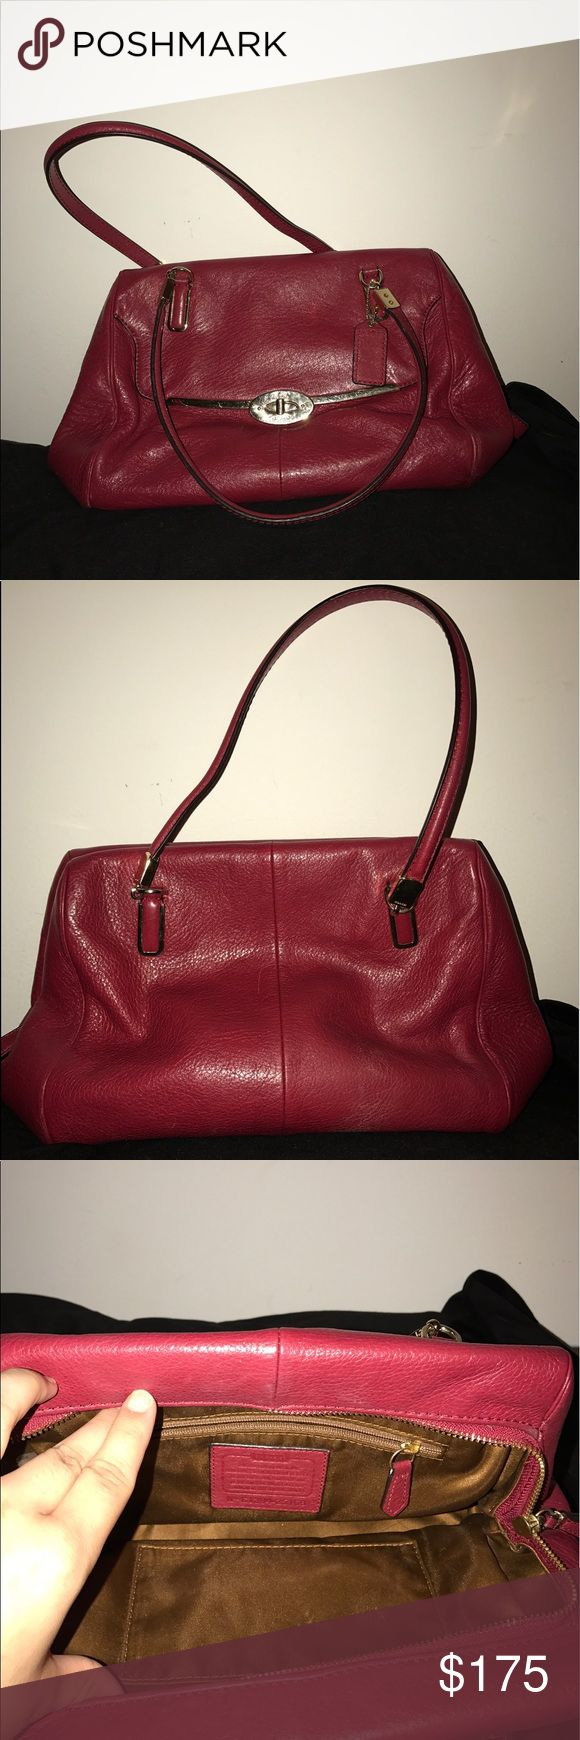 Red Coach Madison Madeline Small Satchel Beautiful Coach Madison Madeline Satchel in cherry red with gold hardware. Lovely brown satin interior. Does not come with long strap. Two shoulder straps are suitable length for forearm or shoulder carrying. Bag is well loved but in wonderful condition - no stains, no imperfections in leather. Comes with white Coach dust bag (which has a small stain, pictured). Must go to a good home! I will miss this bag! Coach Bags Satchels